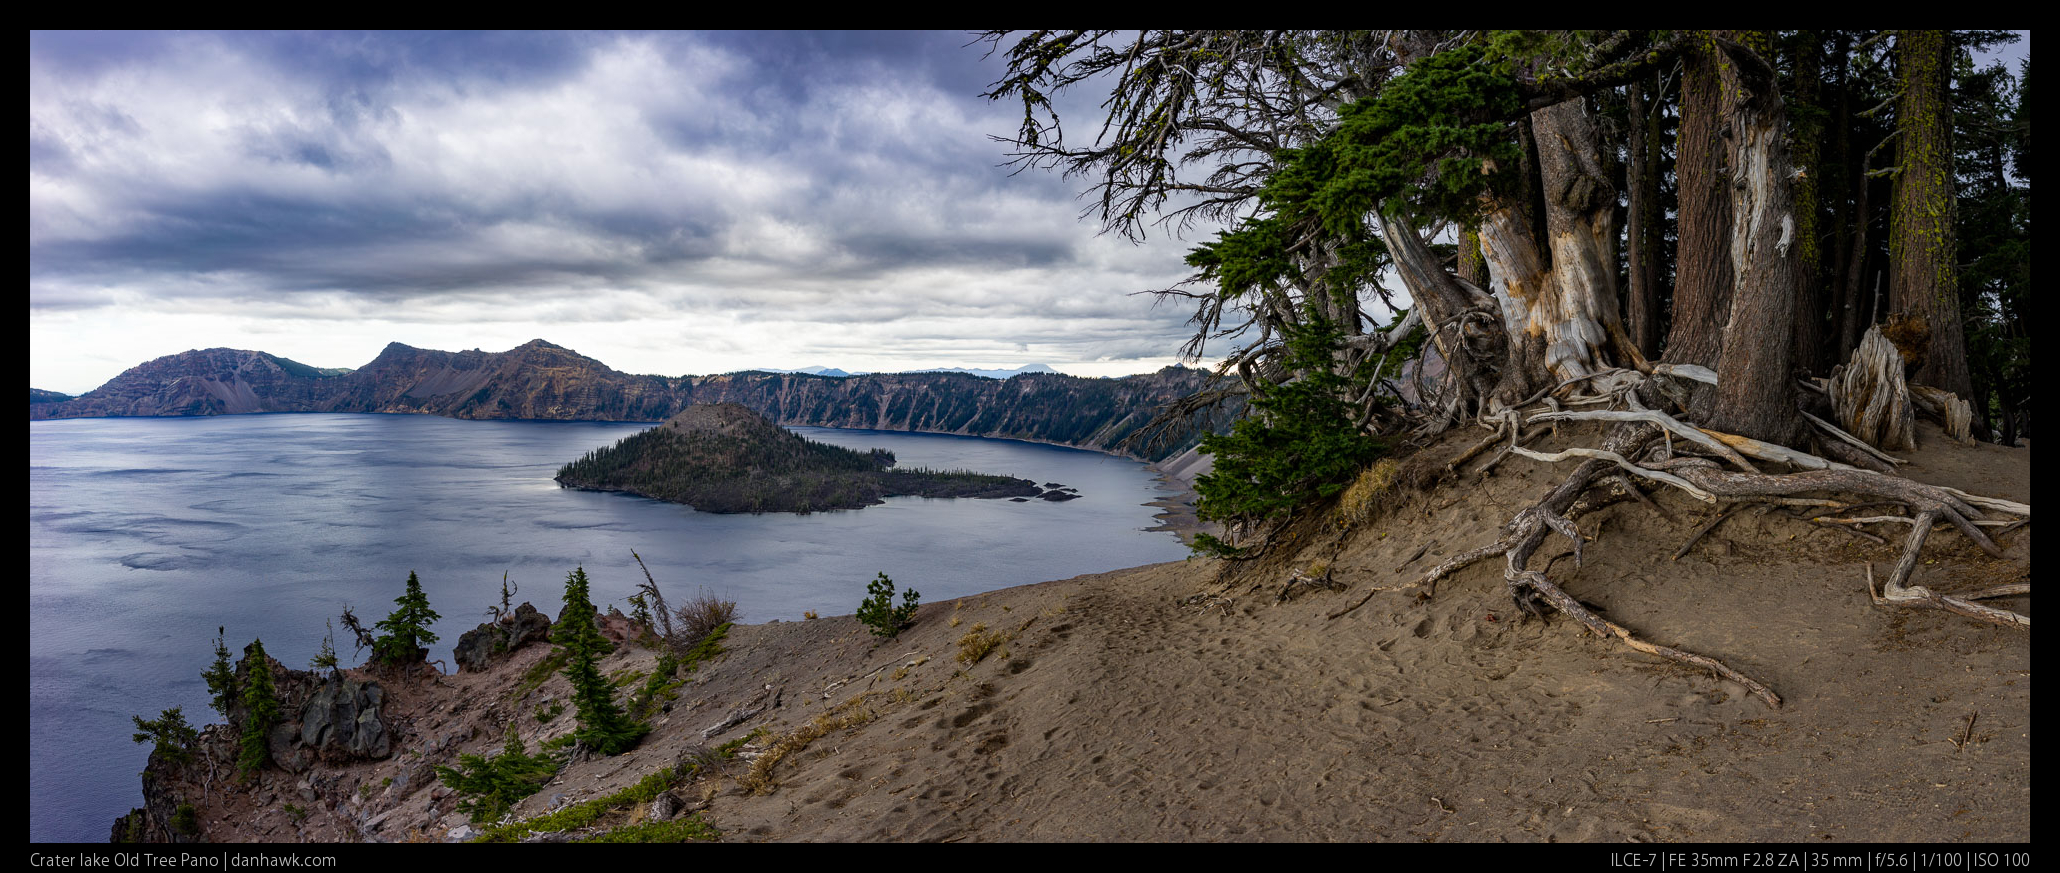 Crater lake Old Tree Pano